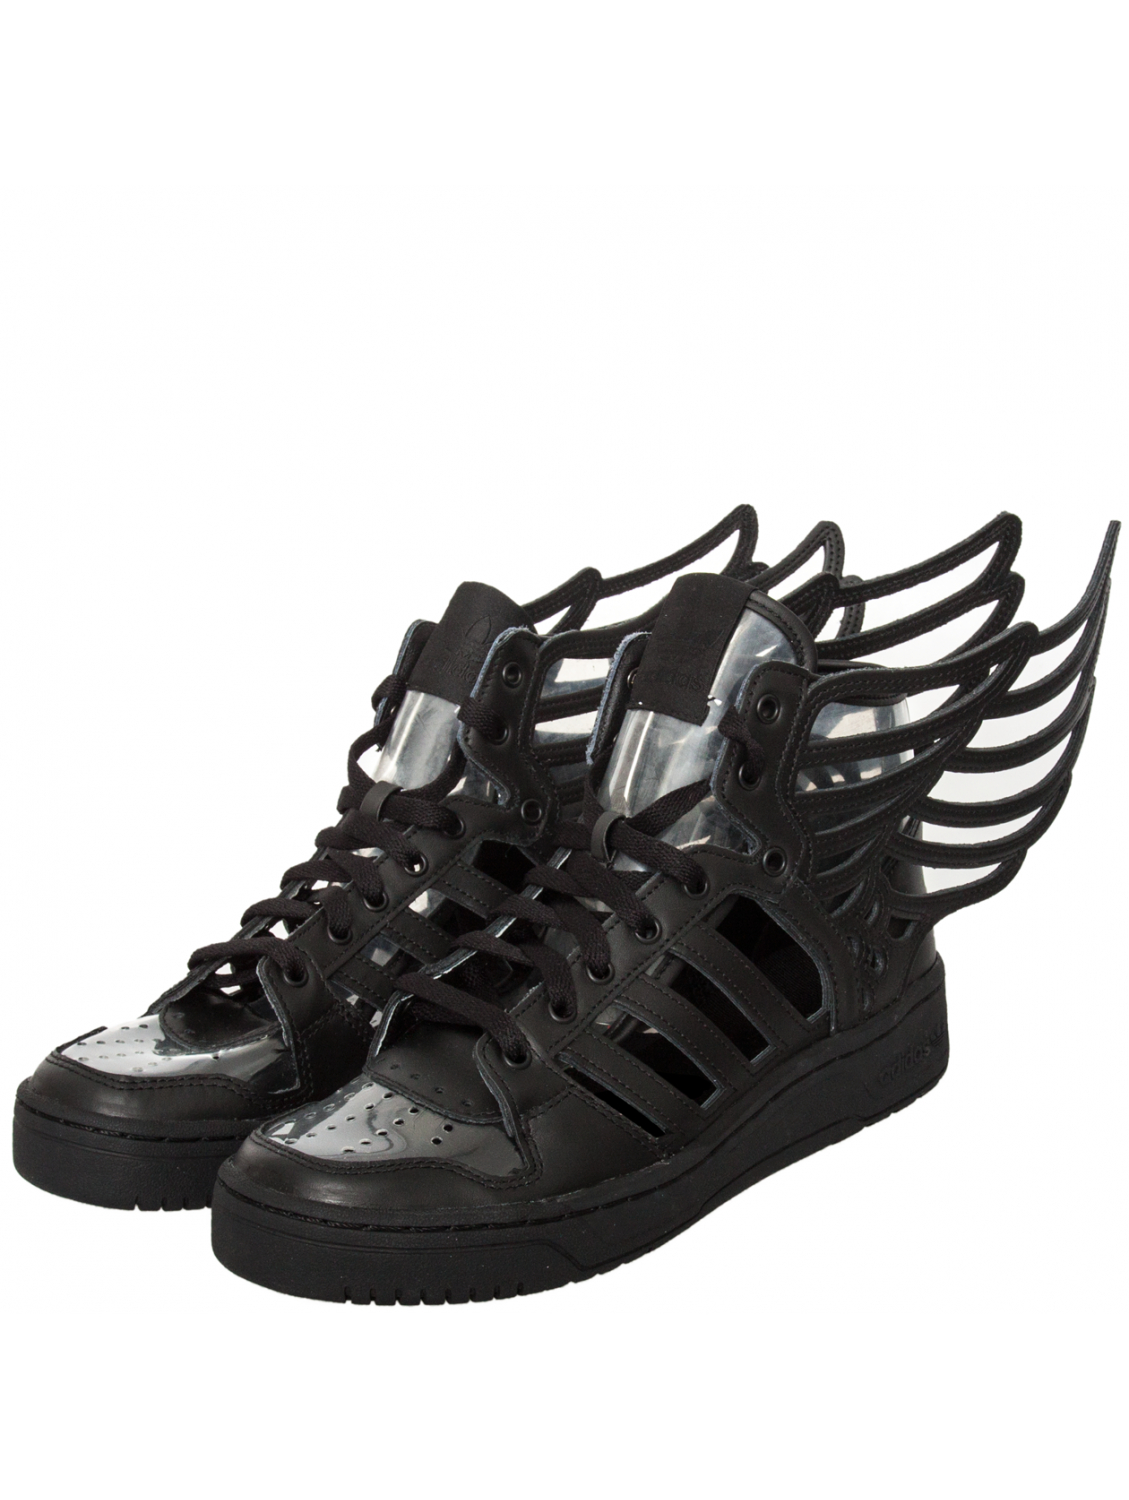 newest 562cd 060d5 Lyst - Jeremy Scott For Adidas Cut Out High Top Wings 2.0 Black in Black for